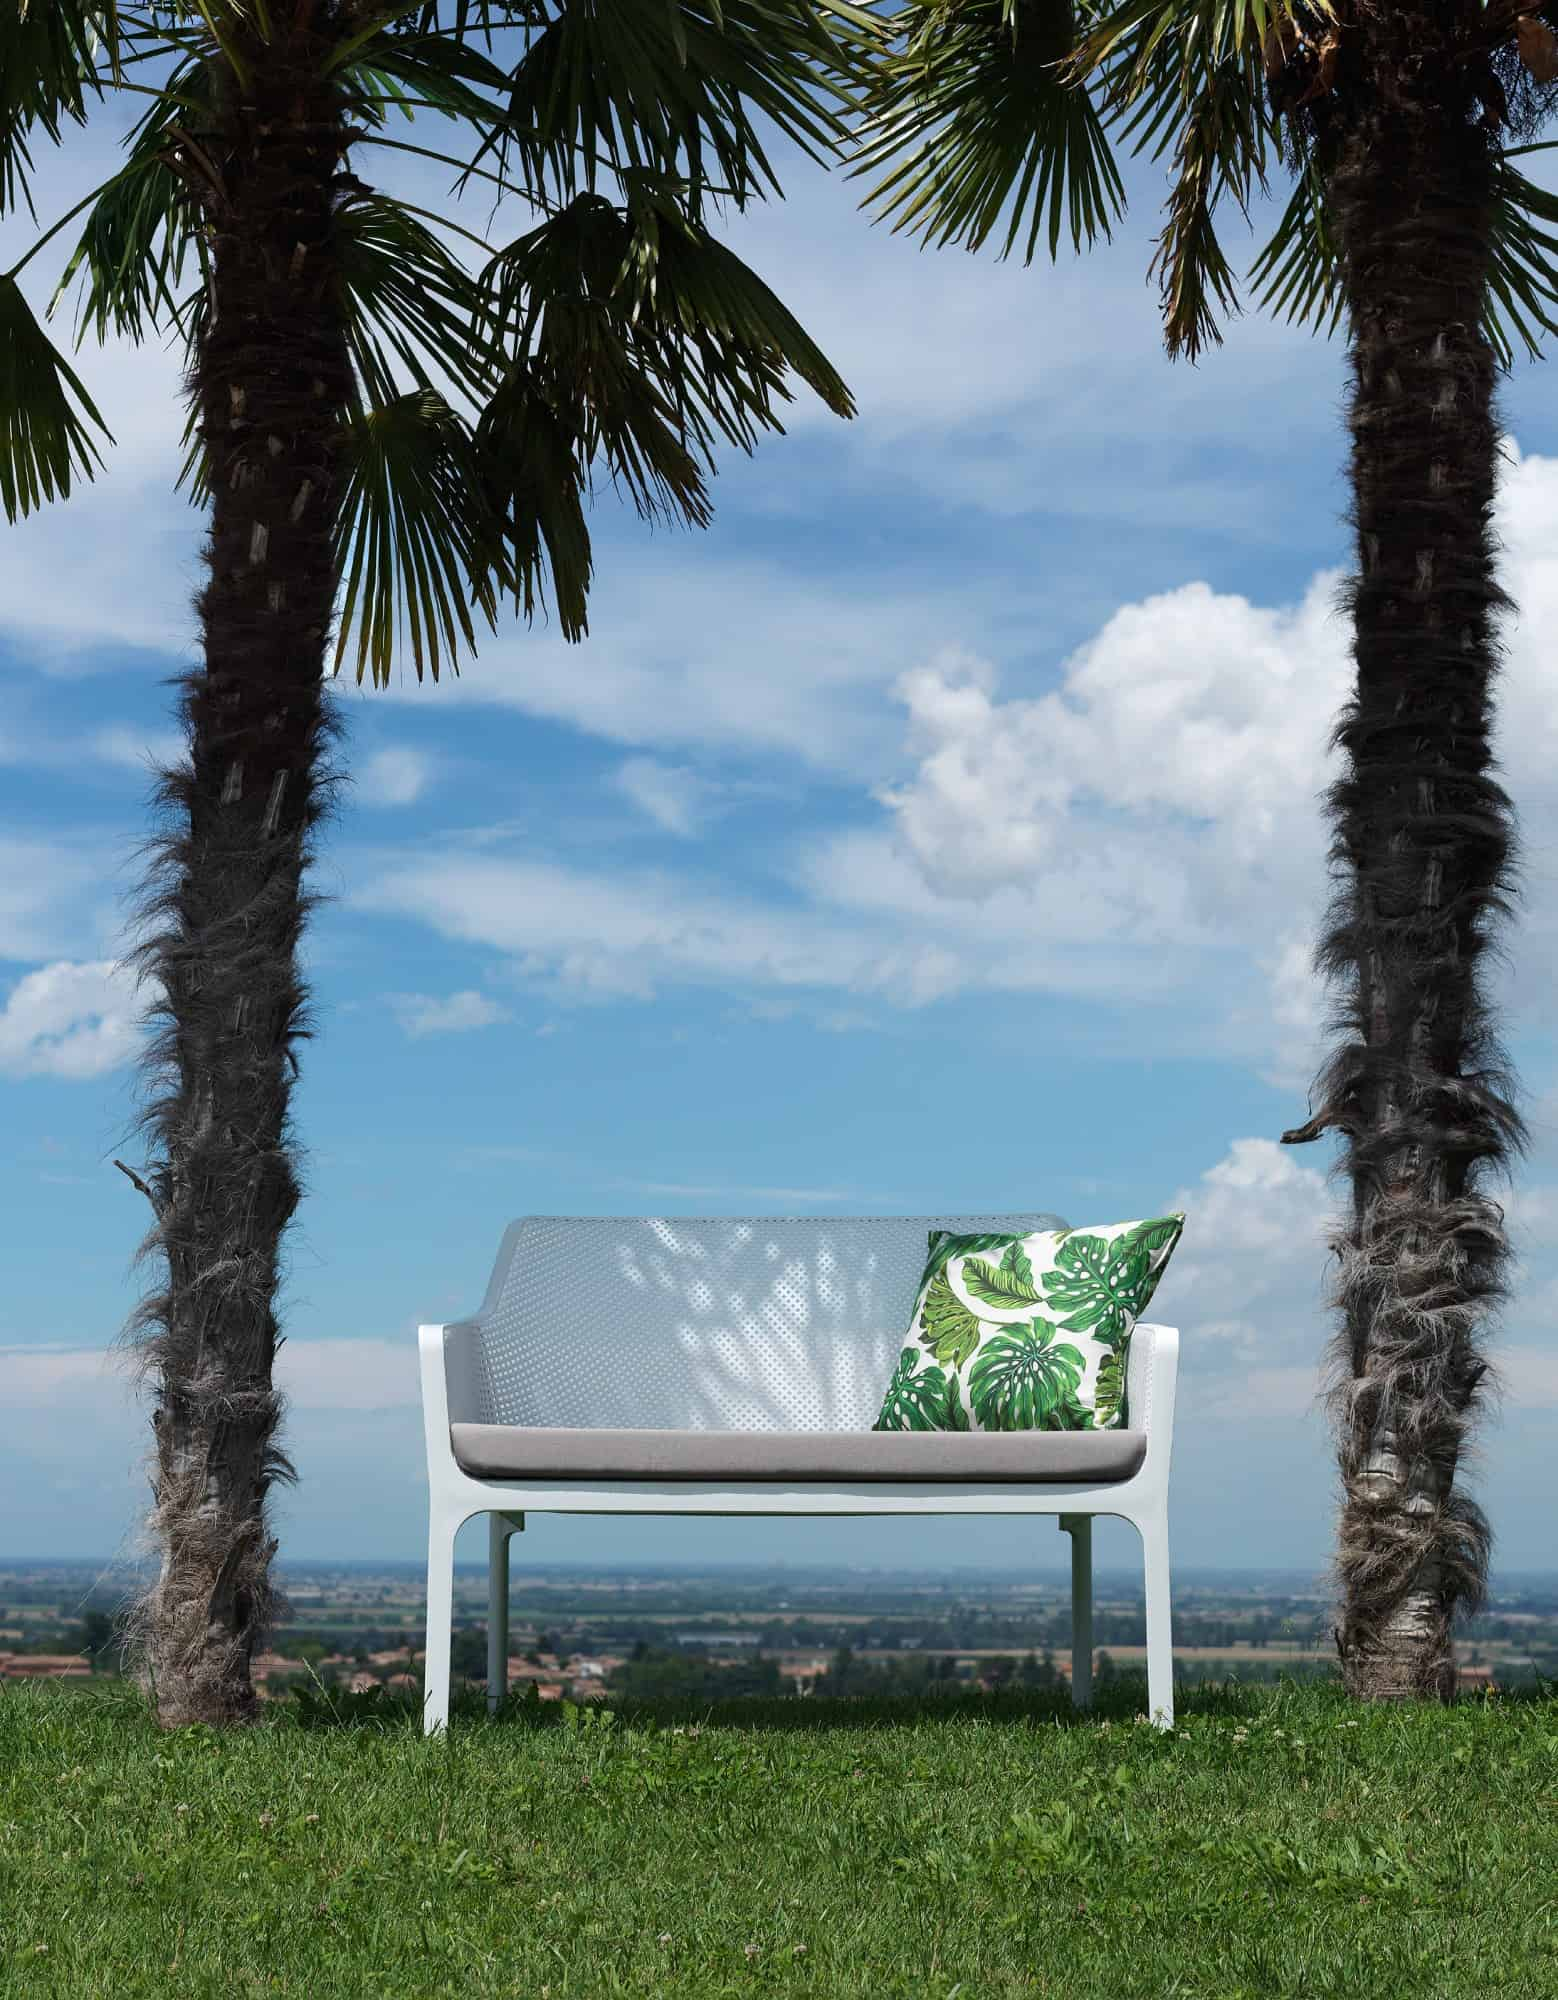 Net Outdoor furniture - sofa by Nardi in white